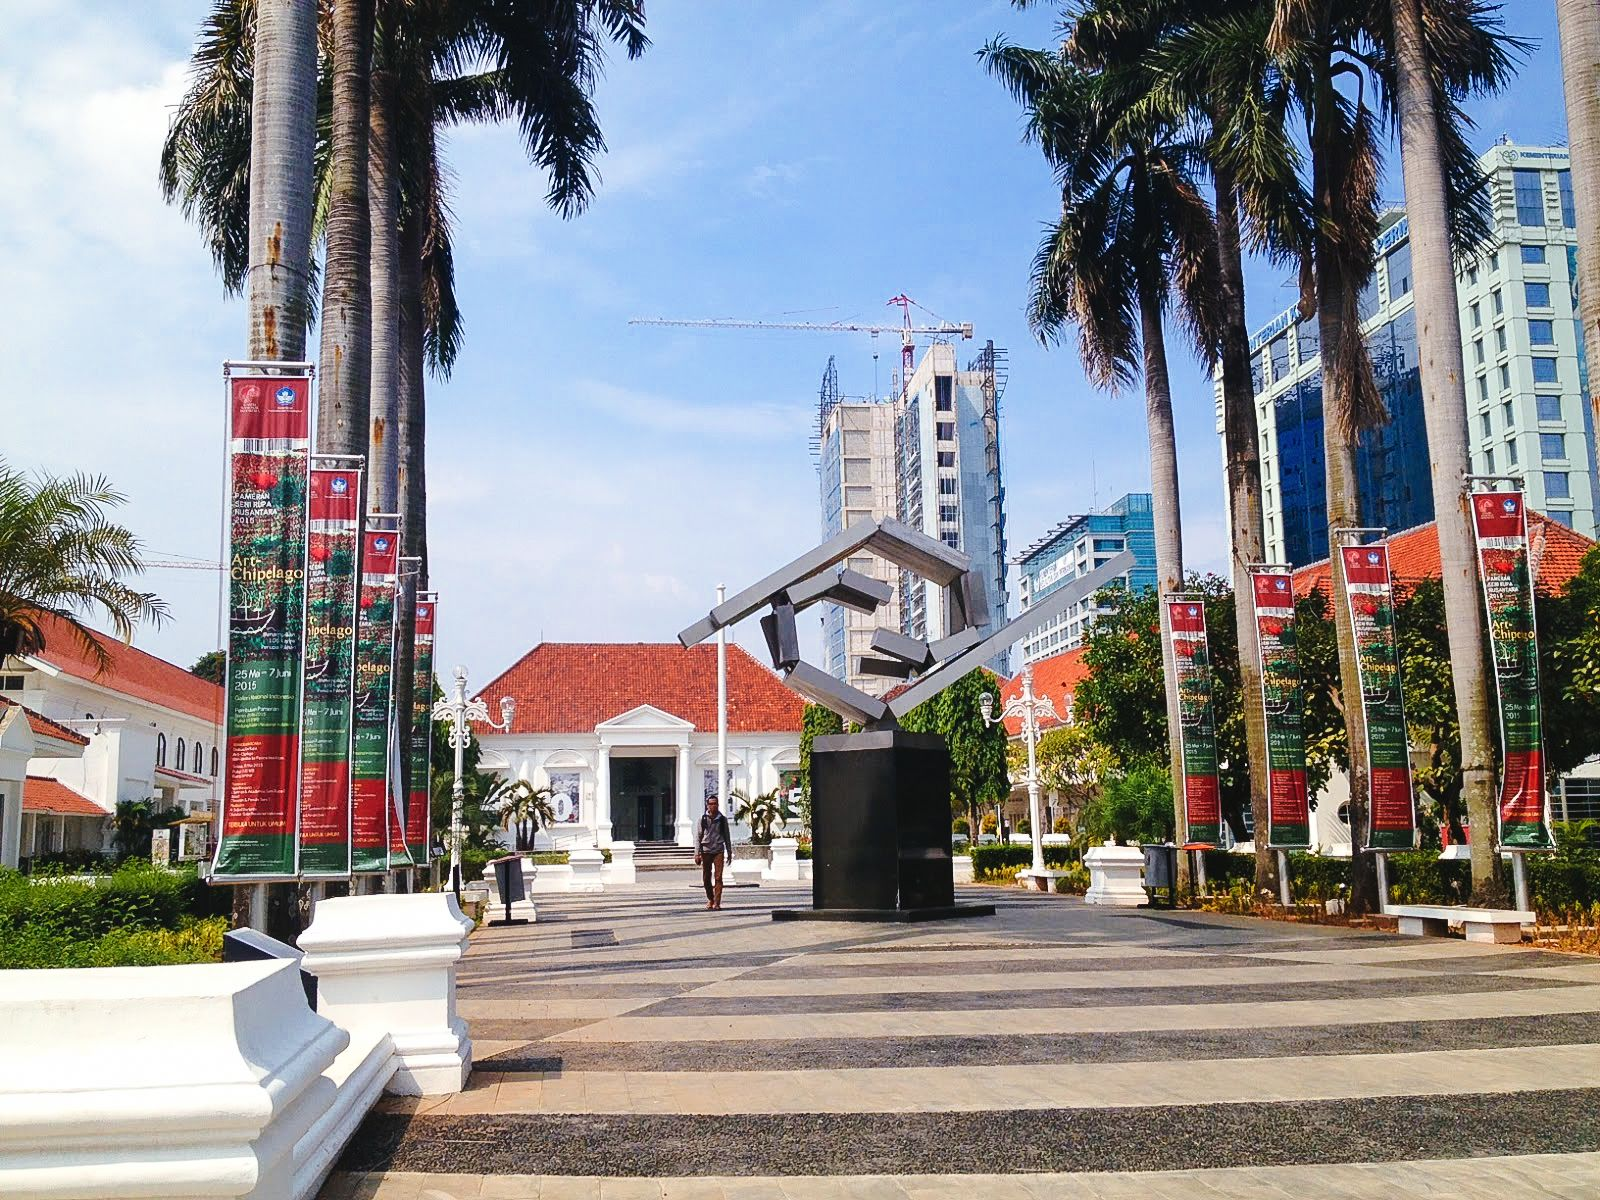 10 Places You Have To Visit In Jakarta, Indonesia - Hand ...